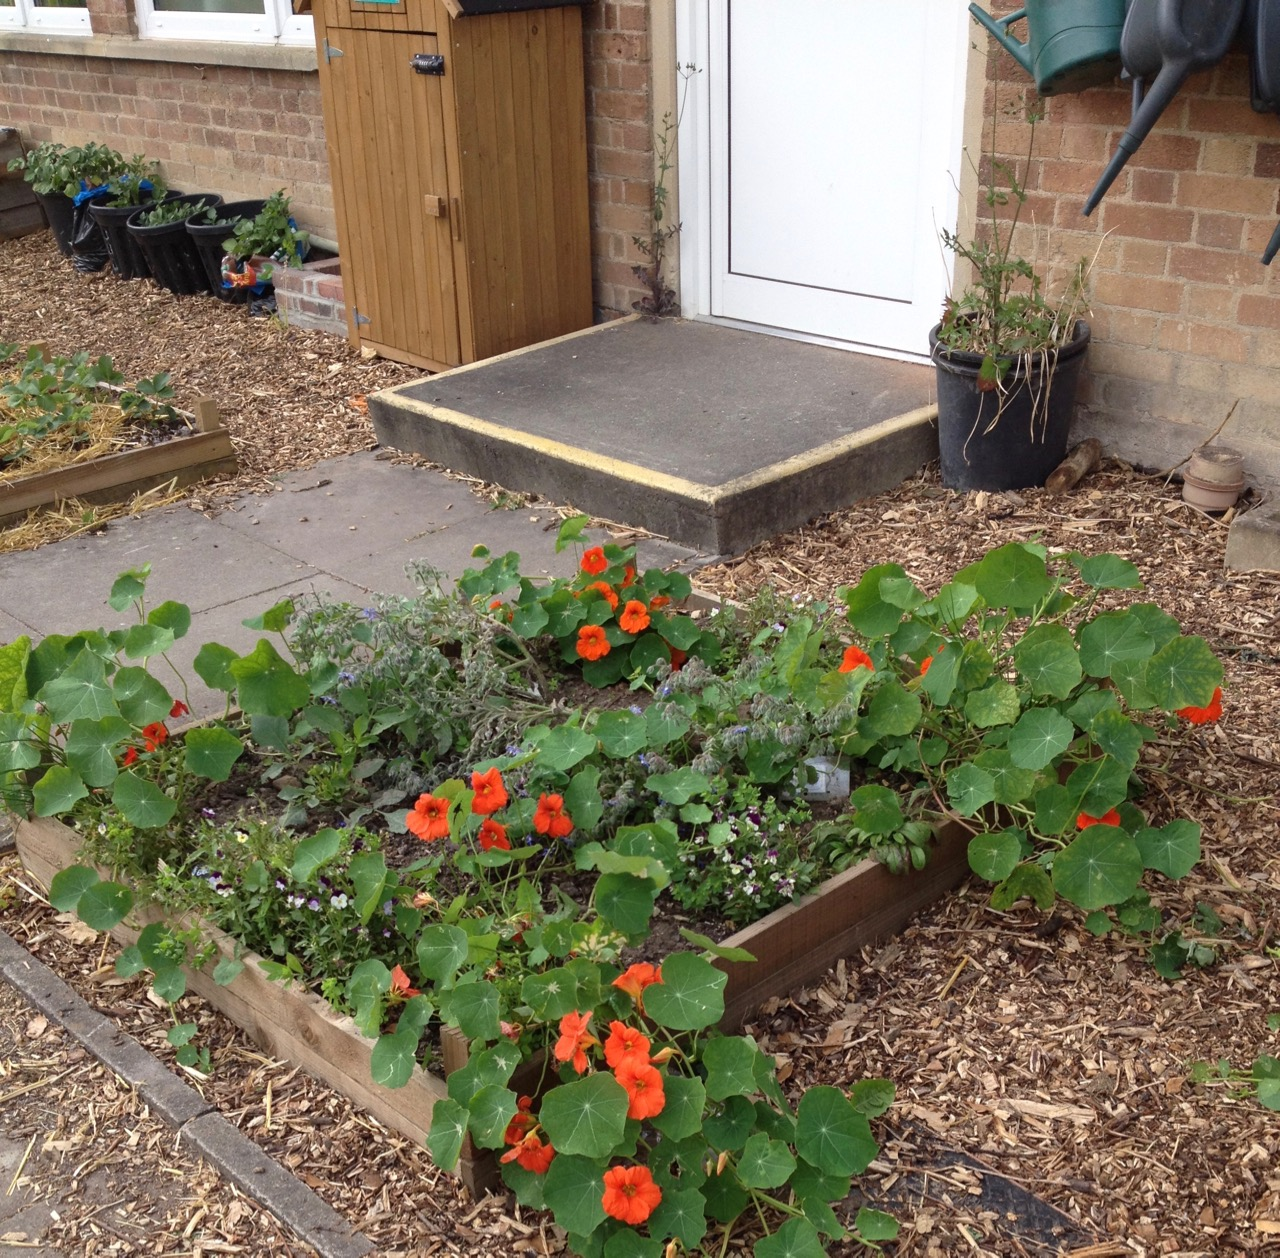 June 2018: The edible flower bed. The red nasturtiums are very peppery and popular with children. Also, potatoes growing in pots and our birdhouse second-hand mini shed.